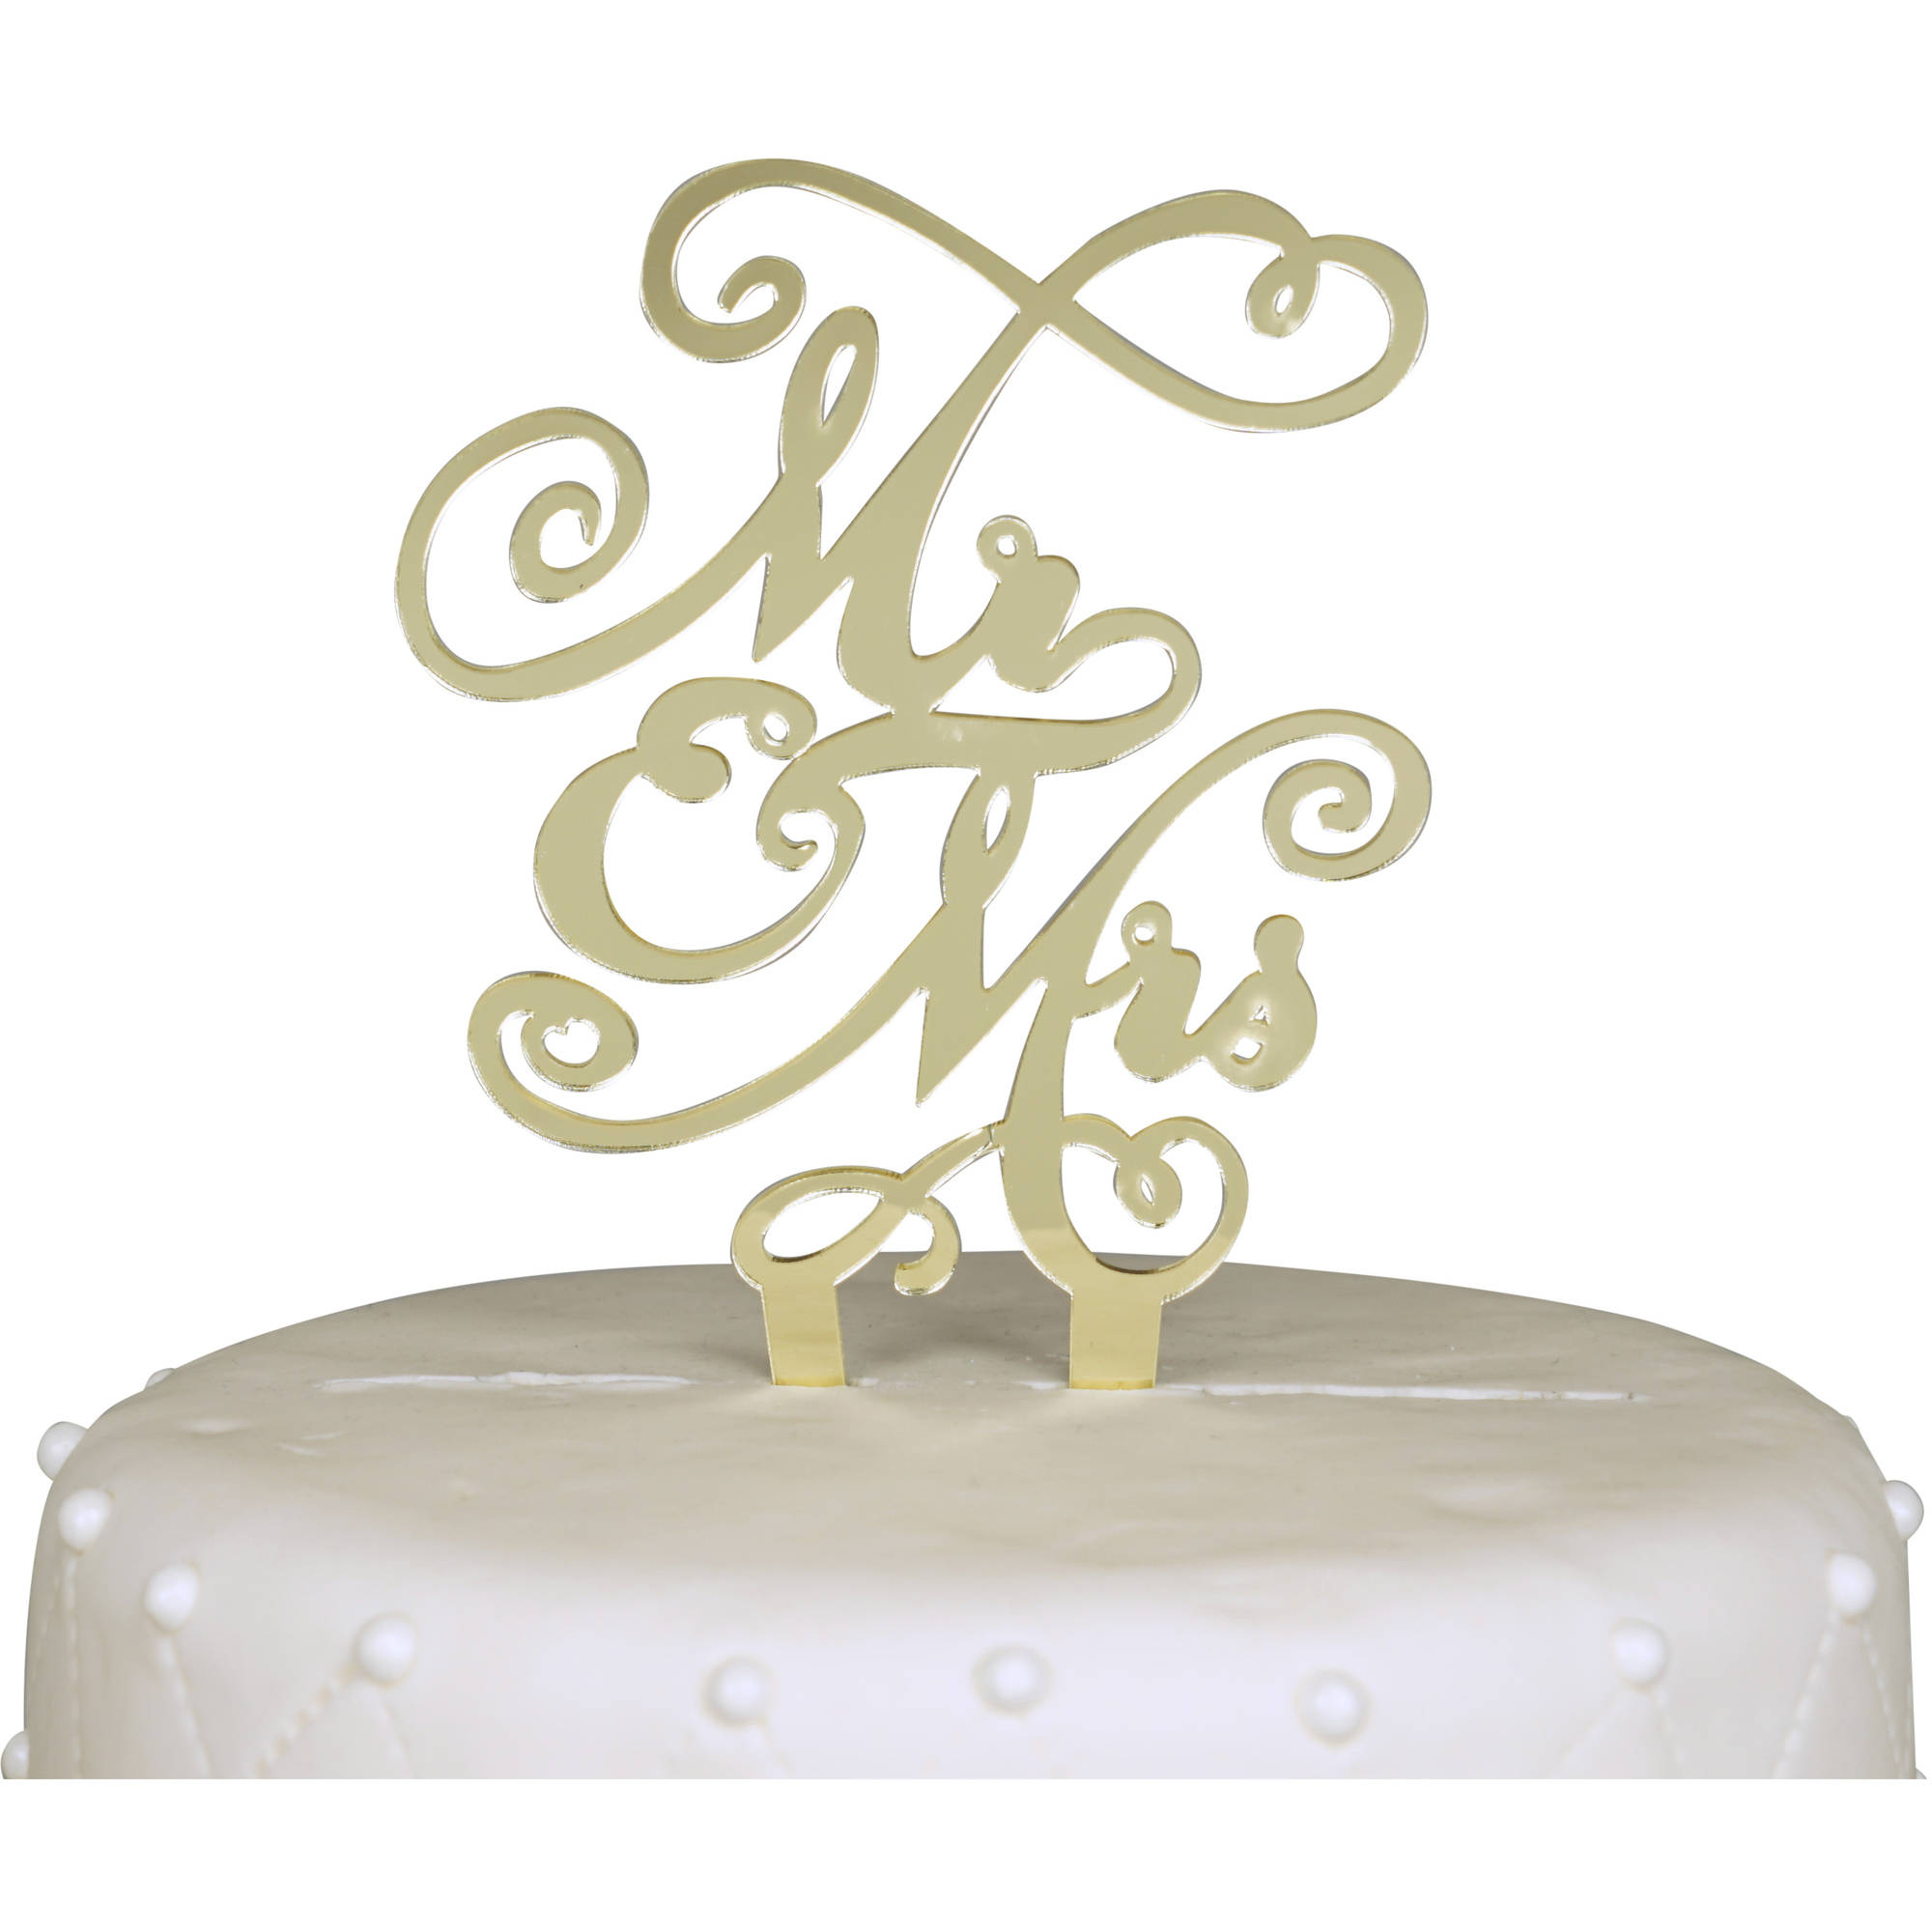 Unik Occasions Mr. and Mrs. Acrylic Cake Topper, Gold Mirror